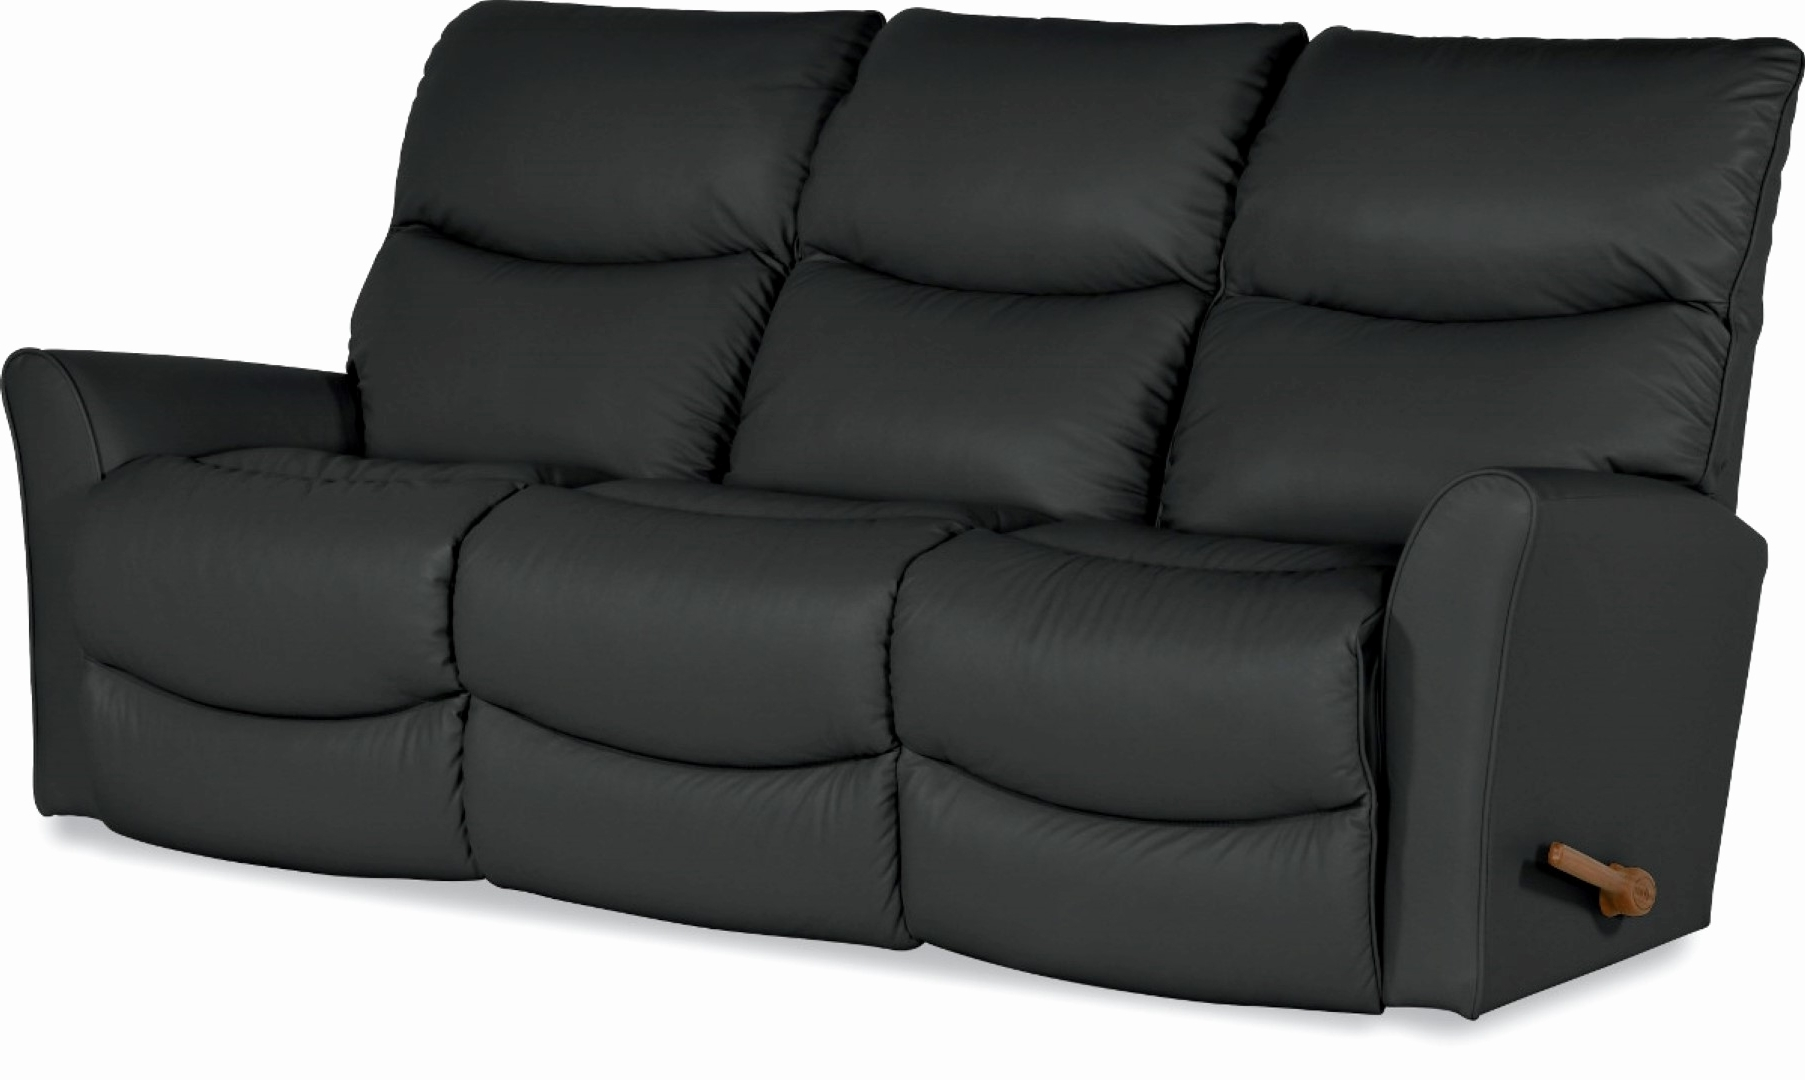 Widely Used Best Lazy Boy L Shaped Sofa 2018 – Couches Ideas Regarding Lazy Boy Chaise Lounge Chairs (View 15 of 15)